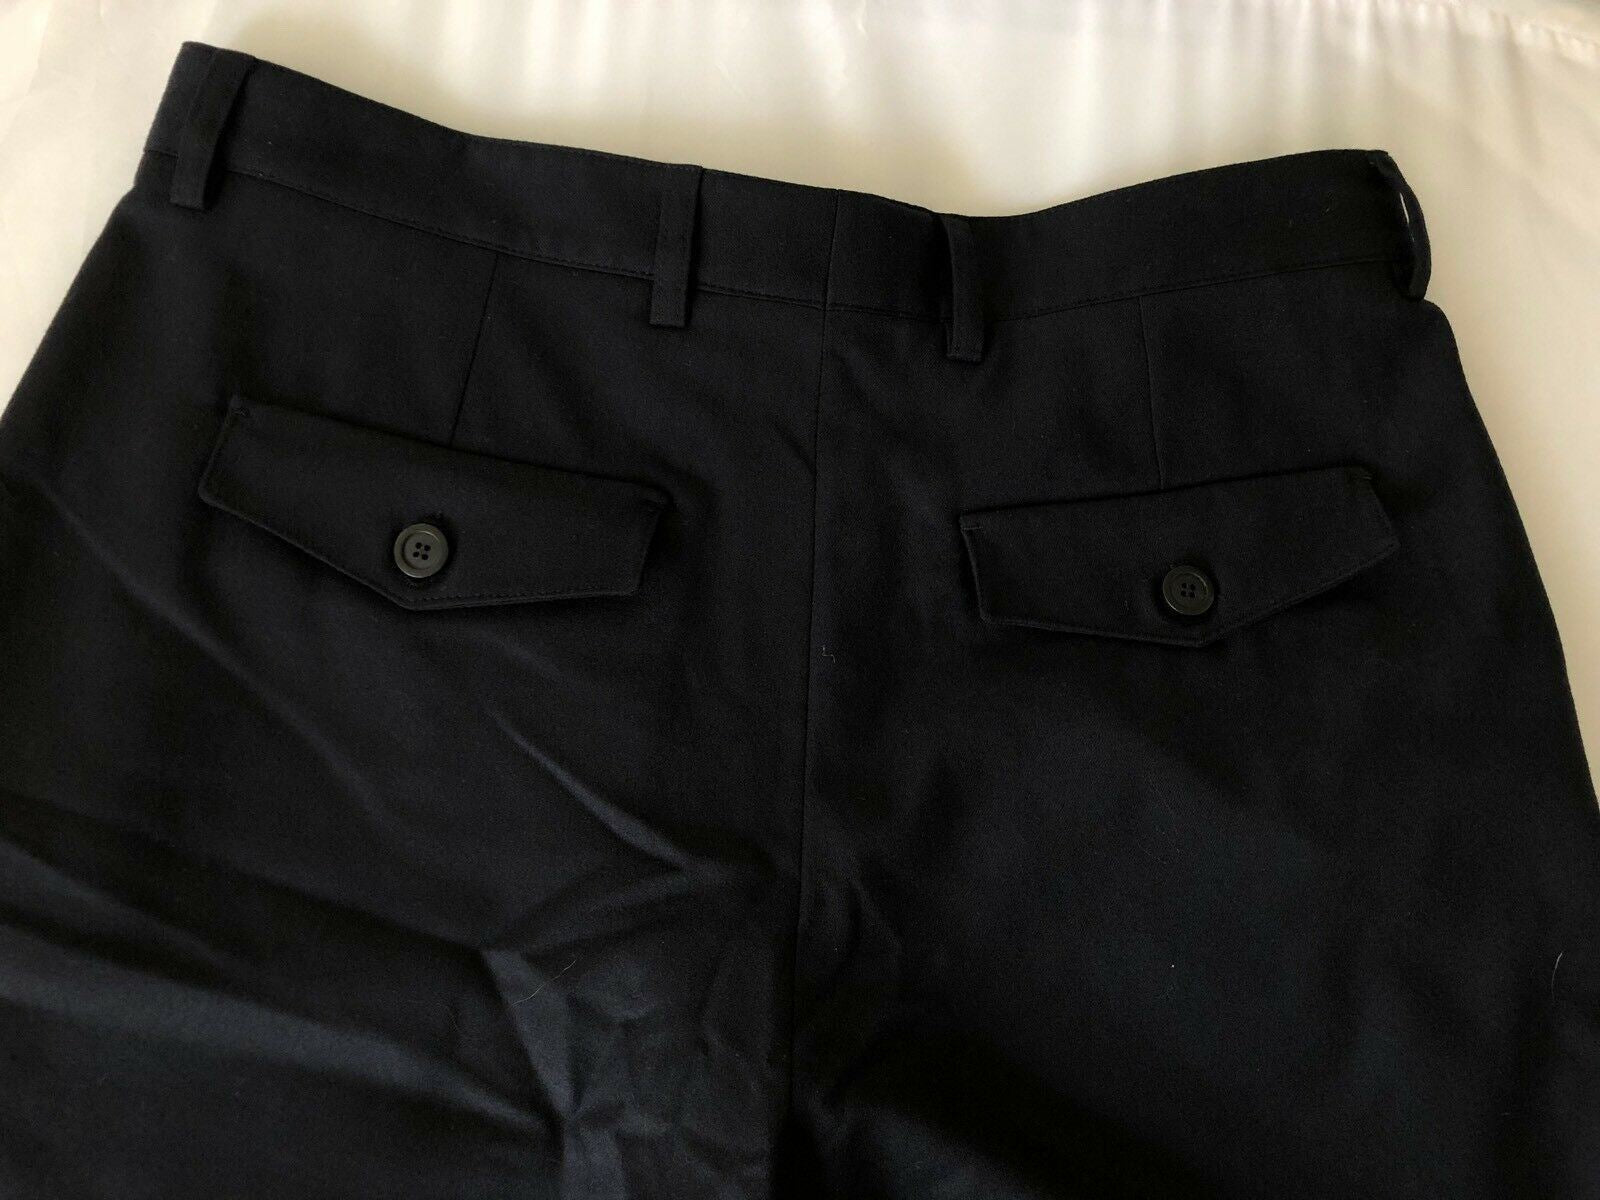 NWT $995 Giorgio Armani Mens Wool Dress Pants Size 34 US (50 Euro) Italy USP034